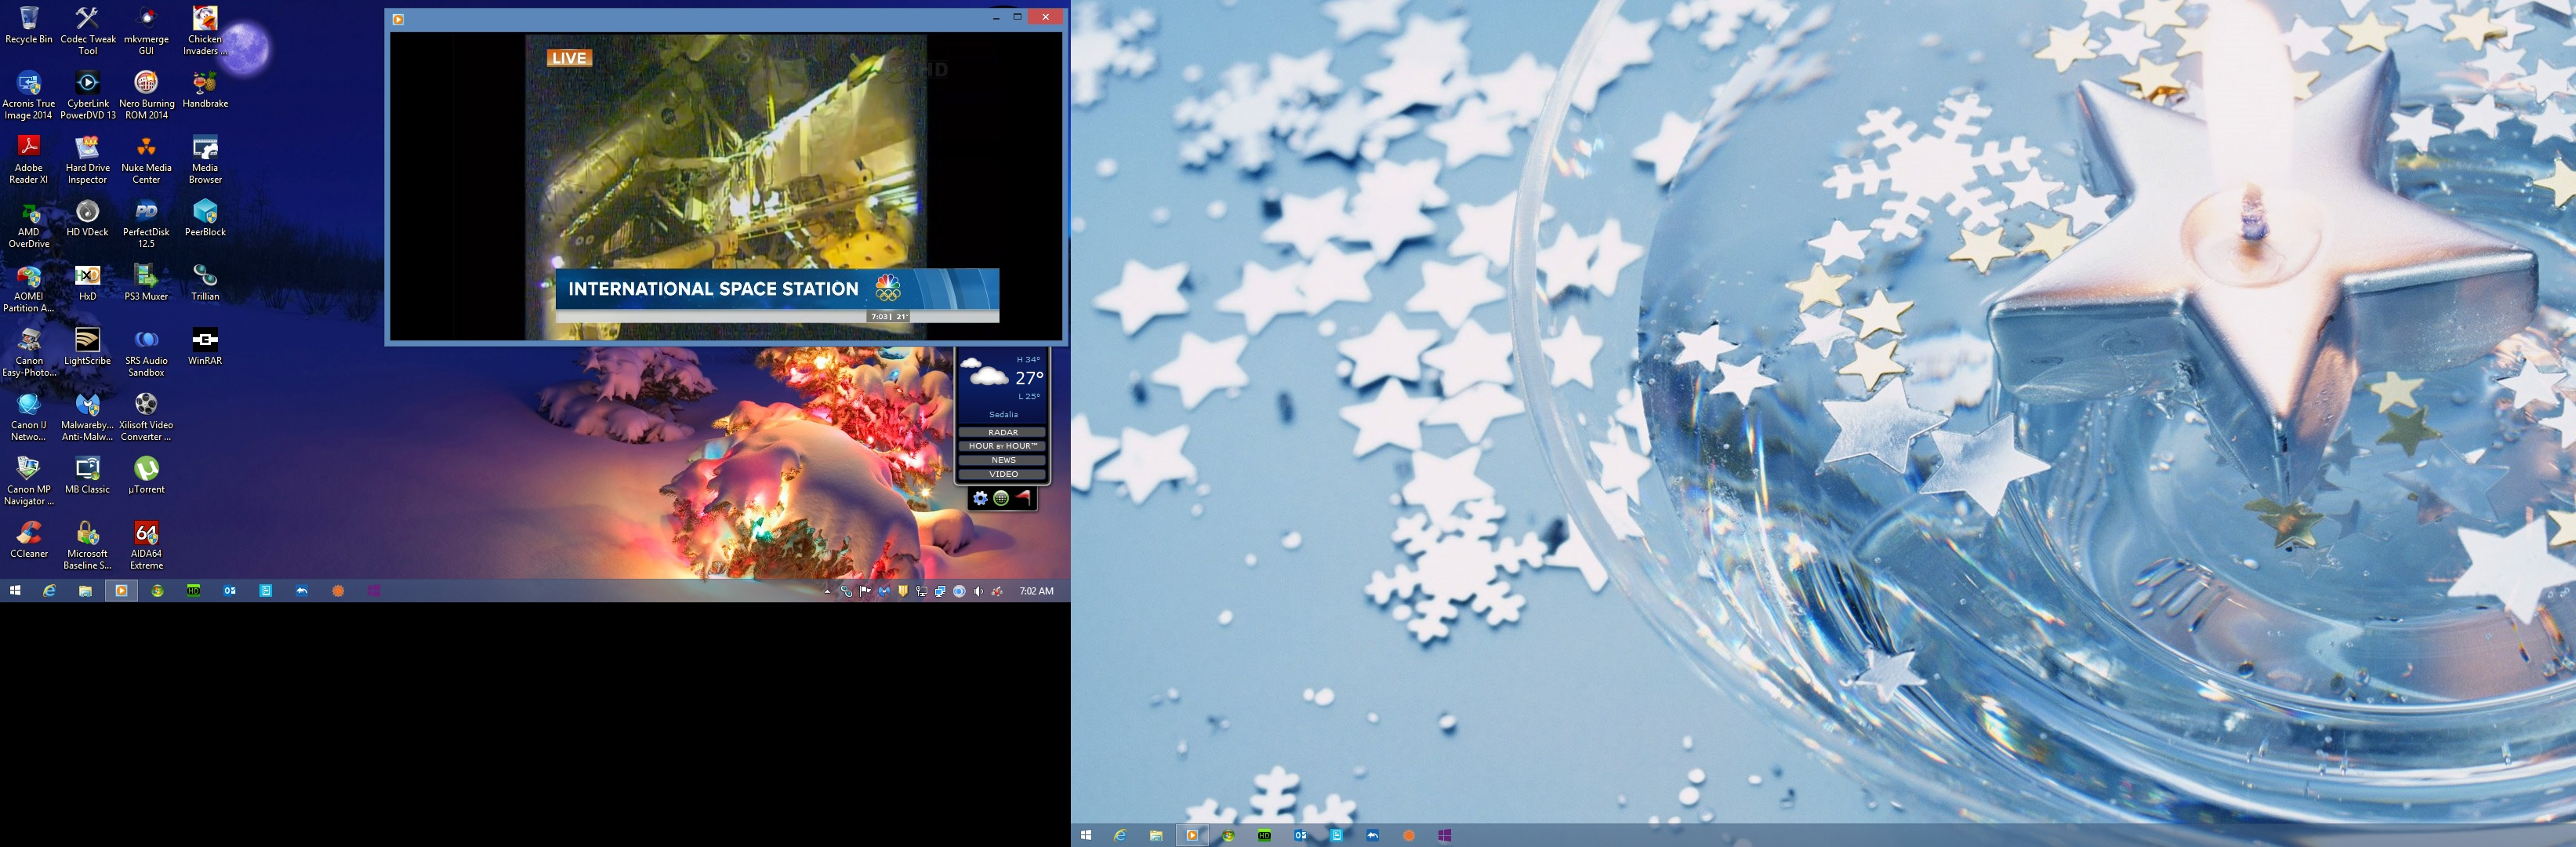 Media player 12 New Trick.jpg